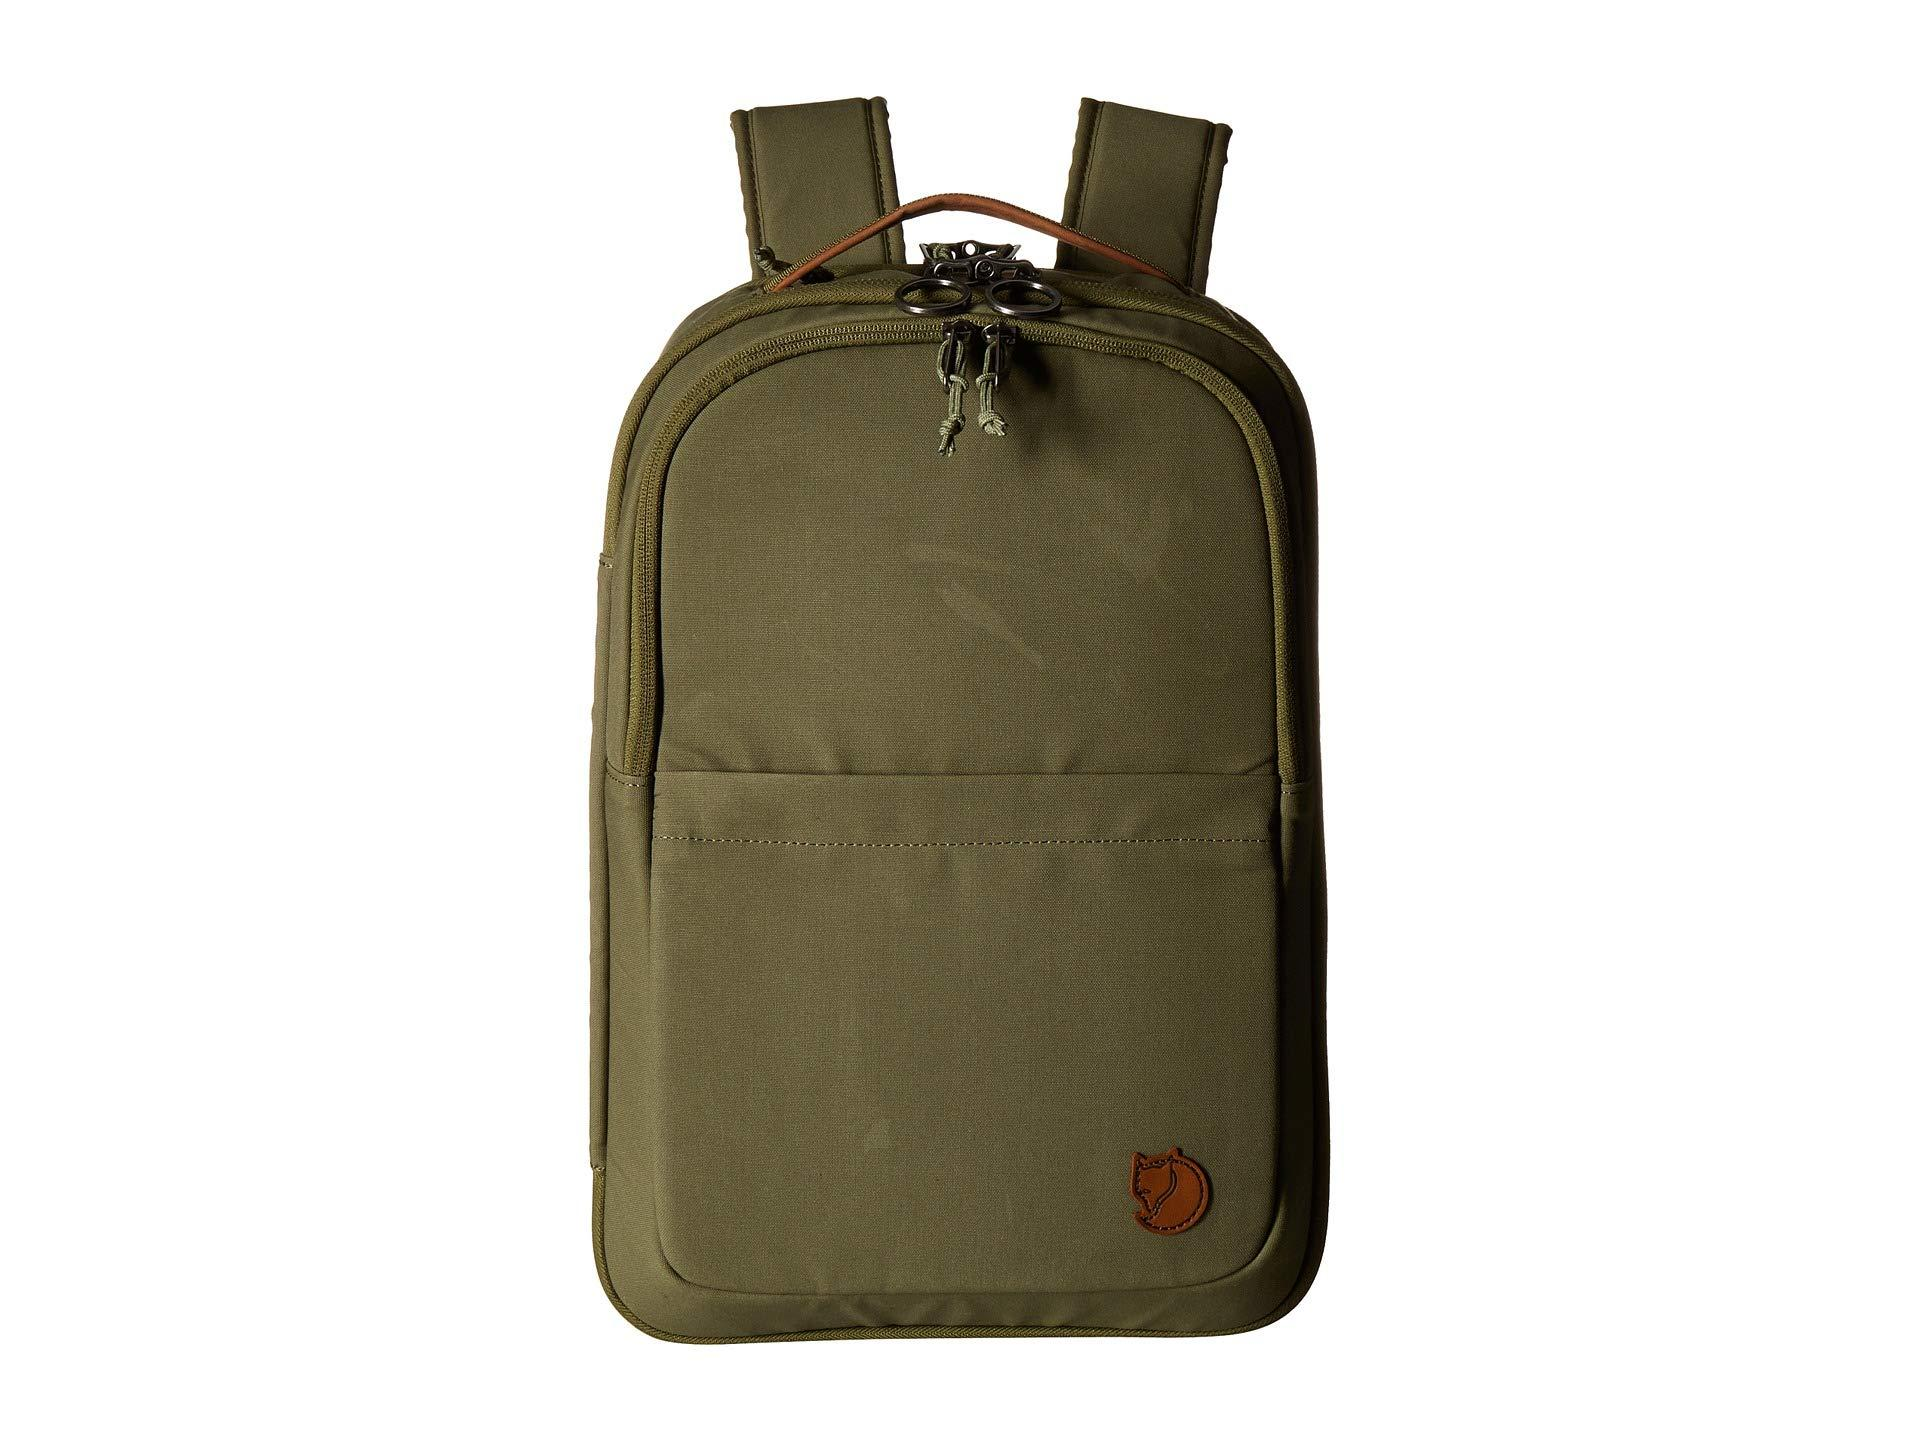 e0ece8799e95 Lyst - Fjallraven Travel Pack Small (black) Backpack Bags in Green ...